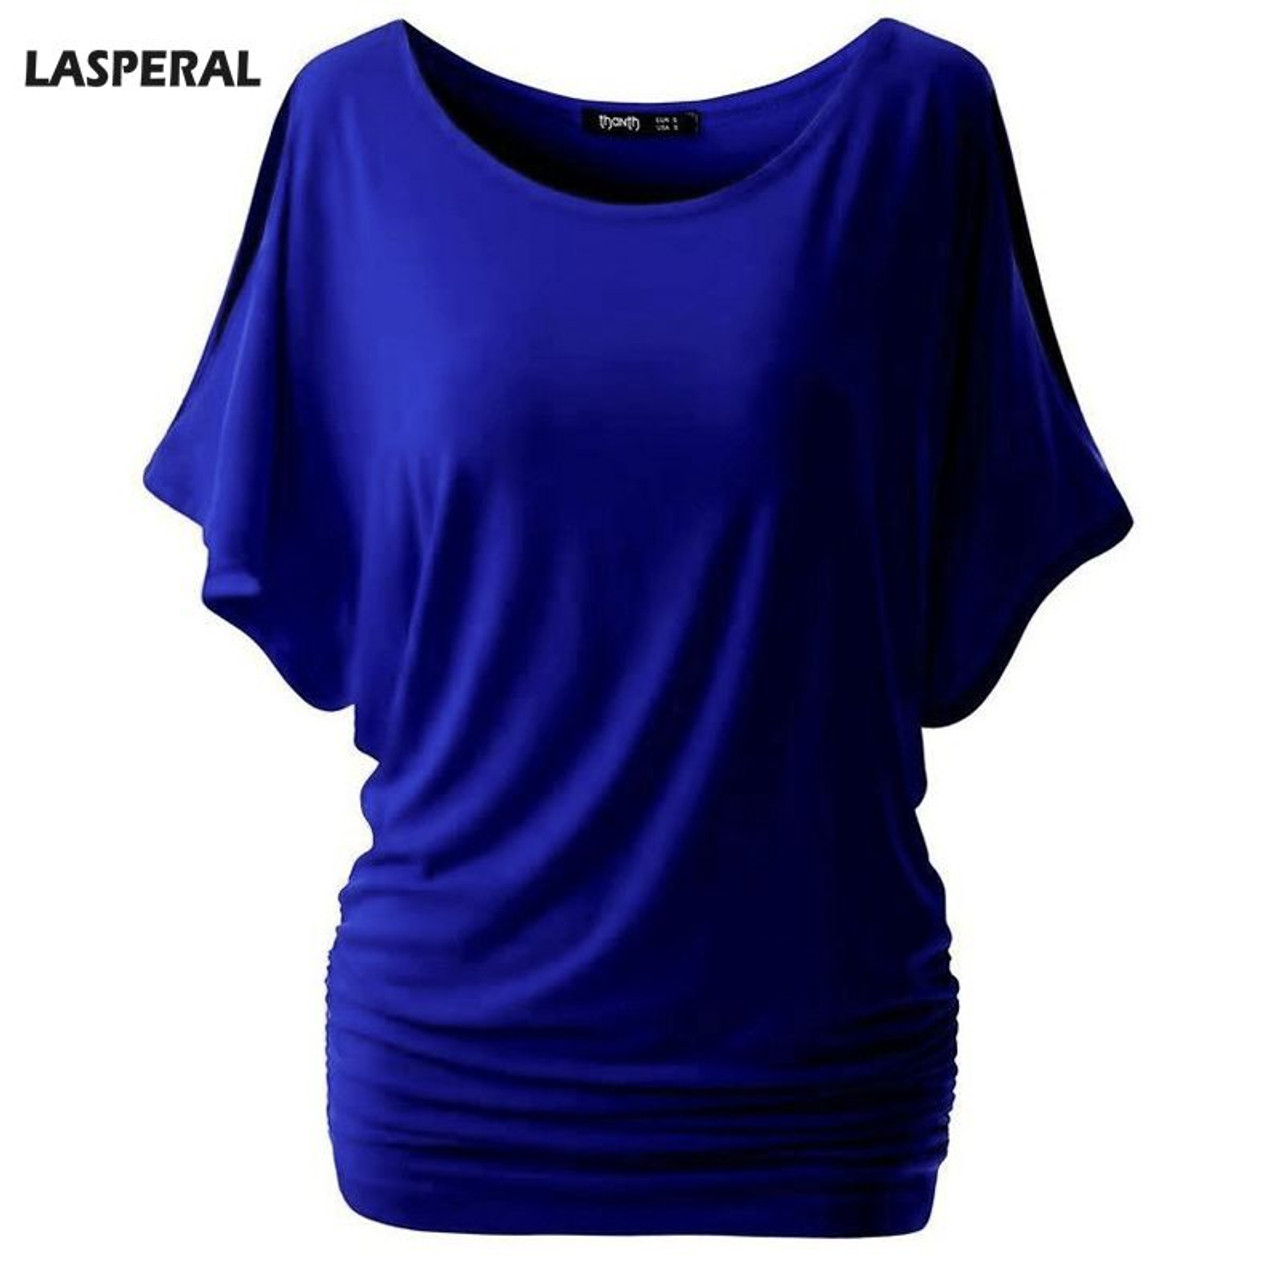 75c53630858 LASPERAL Brand T Shirt for Women Batwing Sleeve Tshirt Tops Solid O-Neck  Cotton Summer Top Tees Female Plus Size Casual Shirts - OnshopDeals.Com